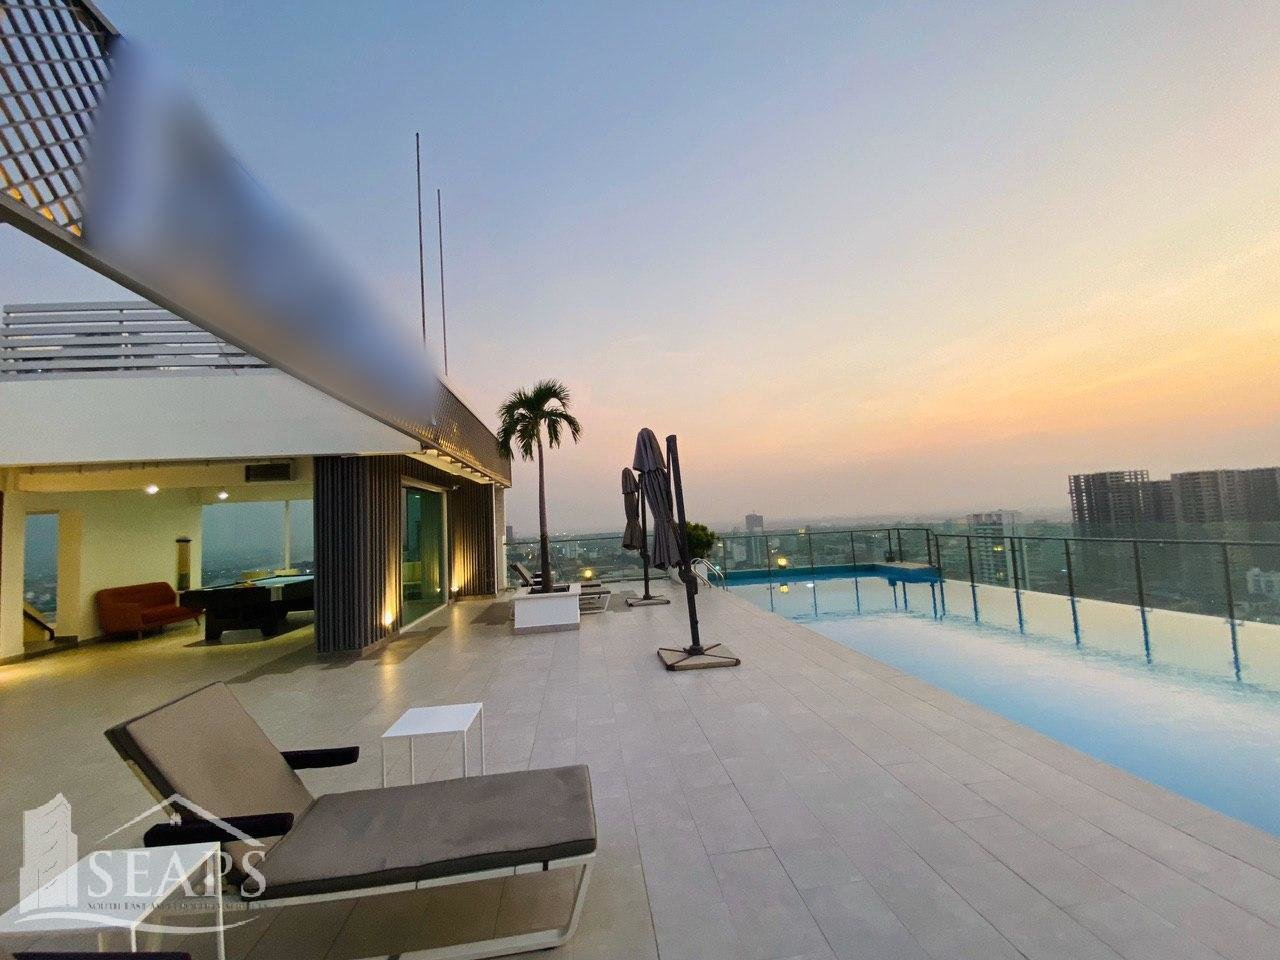 Stylish and Luxury 1 Bedroom/Studio Condo For Rent in BKK1